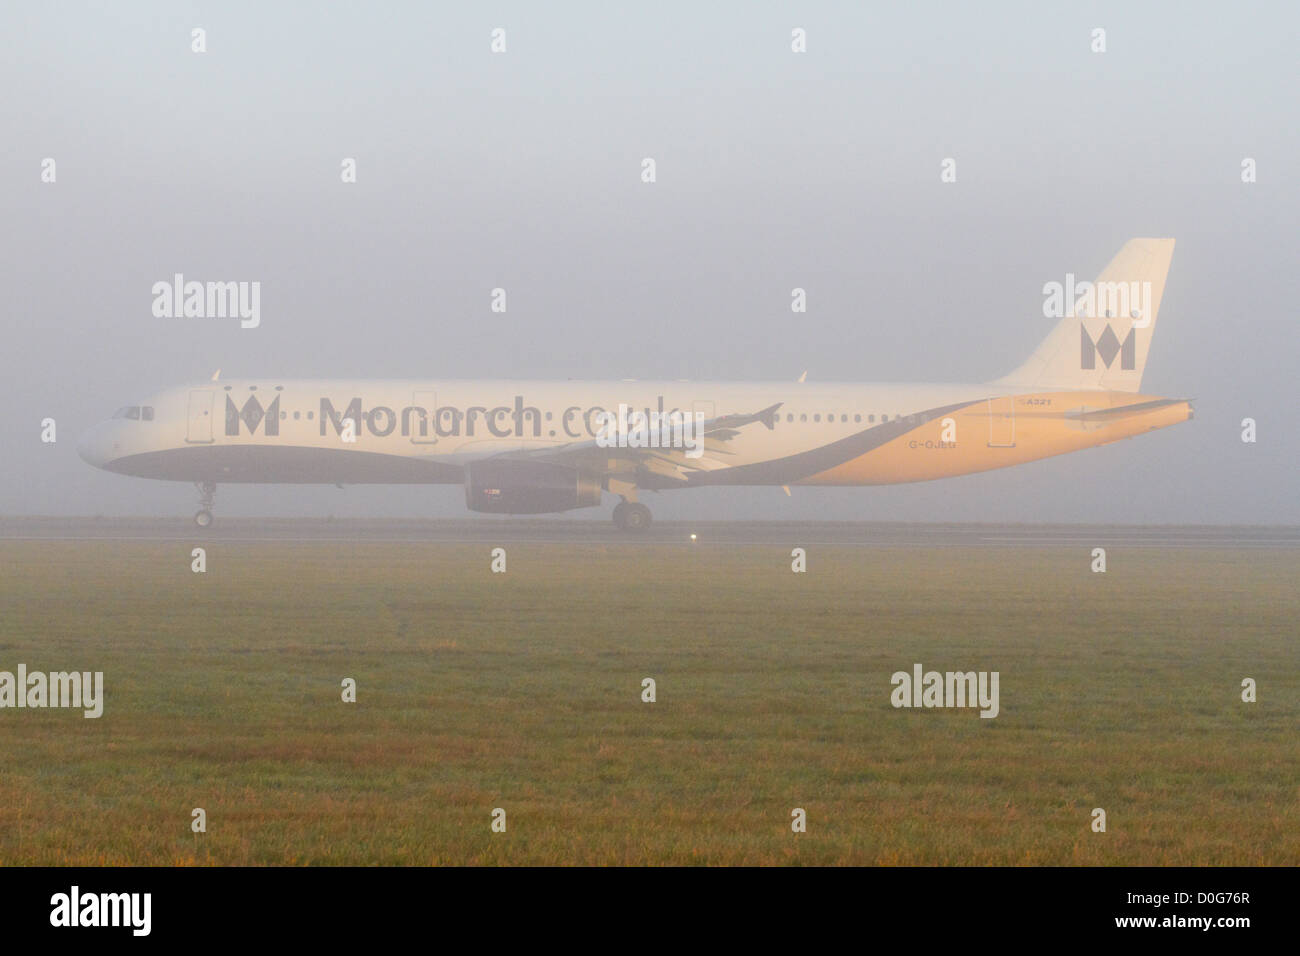 Monarch Airlines Airbus A321 taking off on a foggy morning Stock Photo